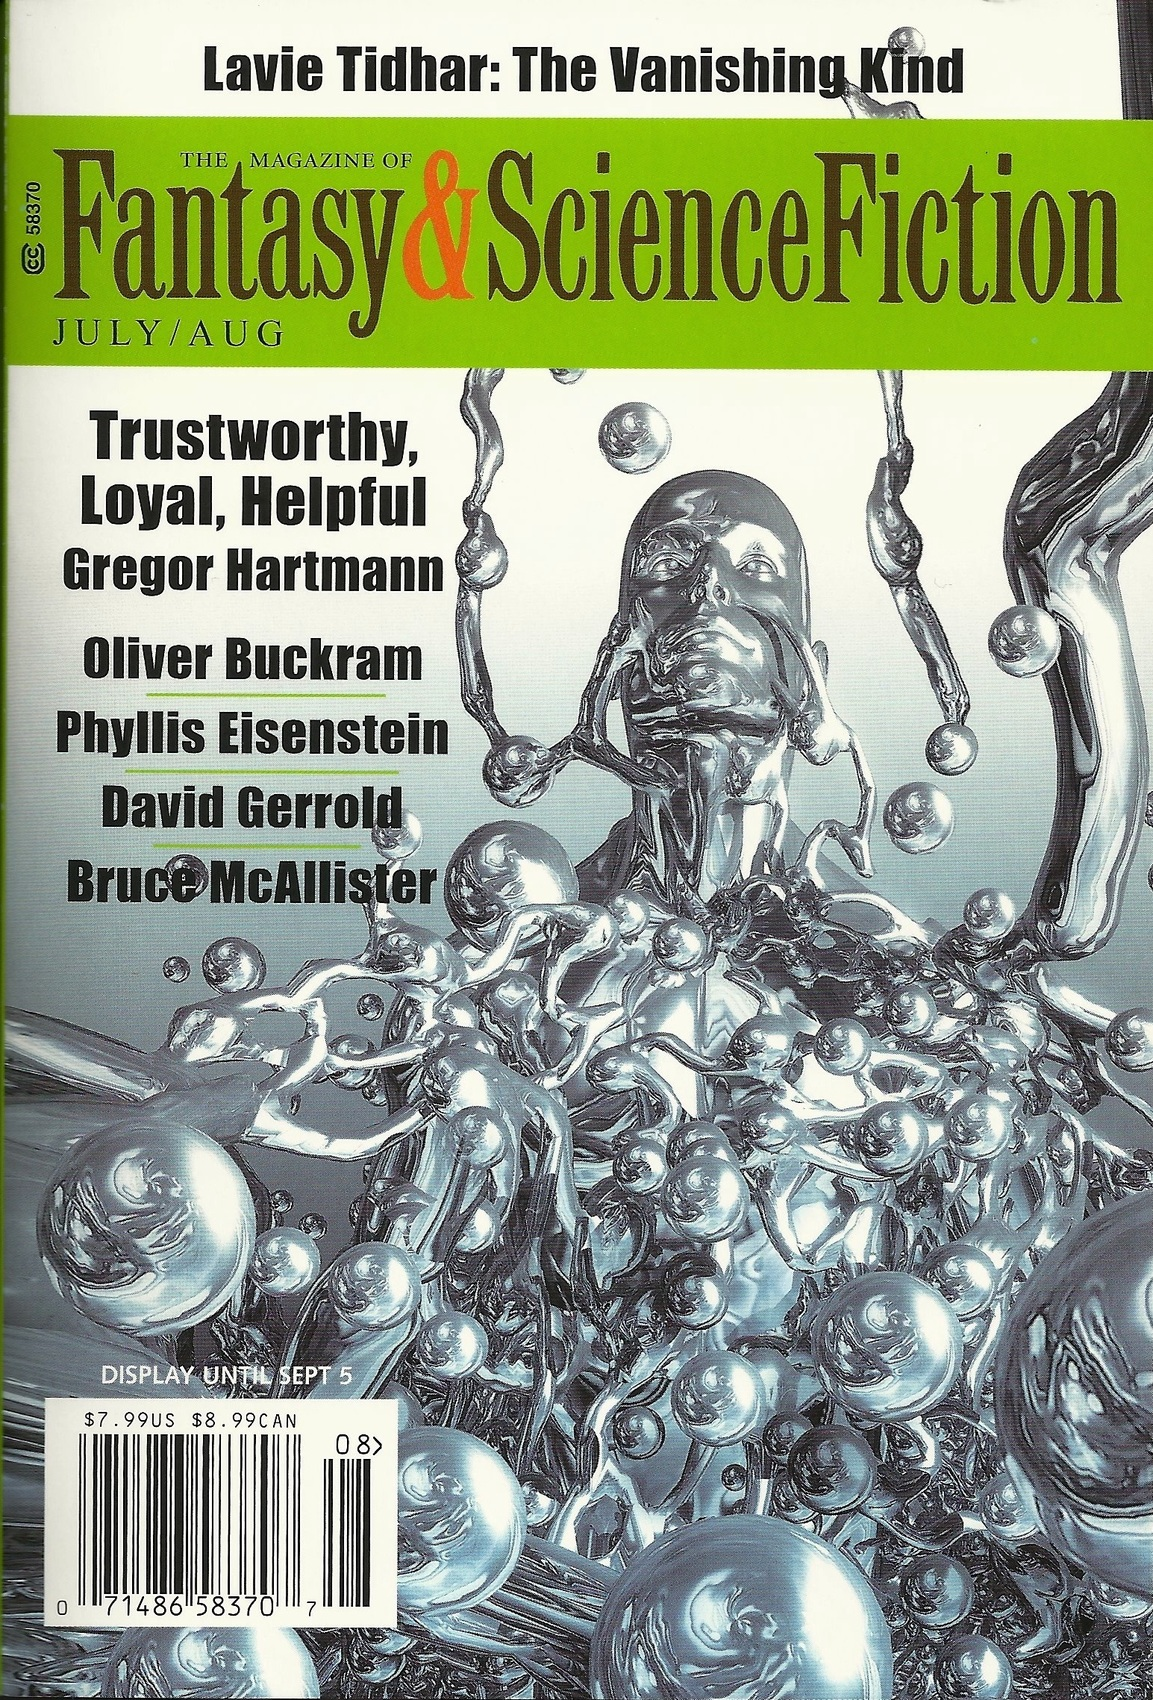 Black Gate » Articles » July/August Magazine of Fantasy